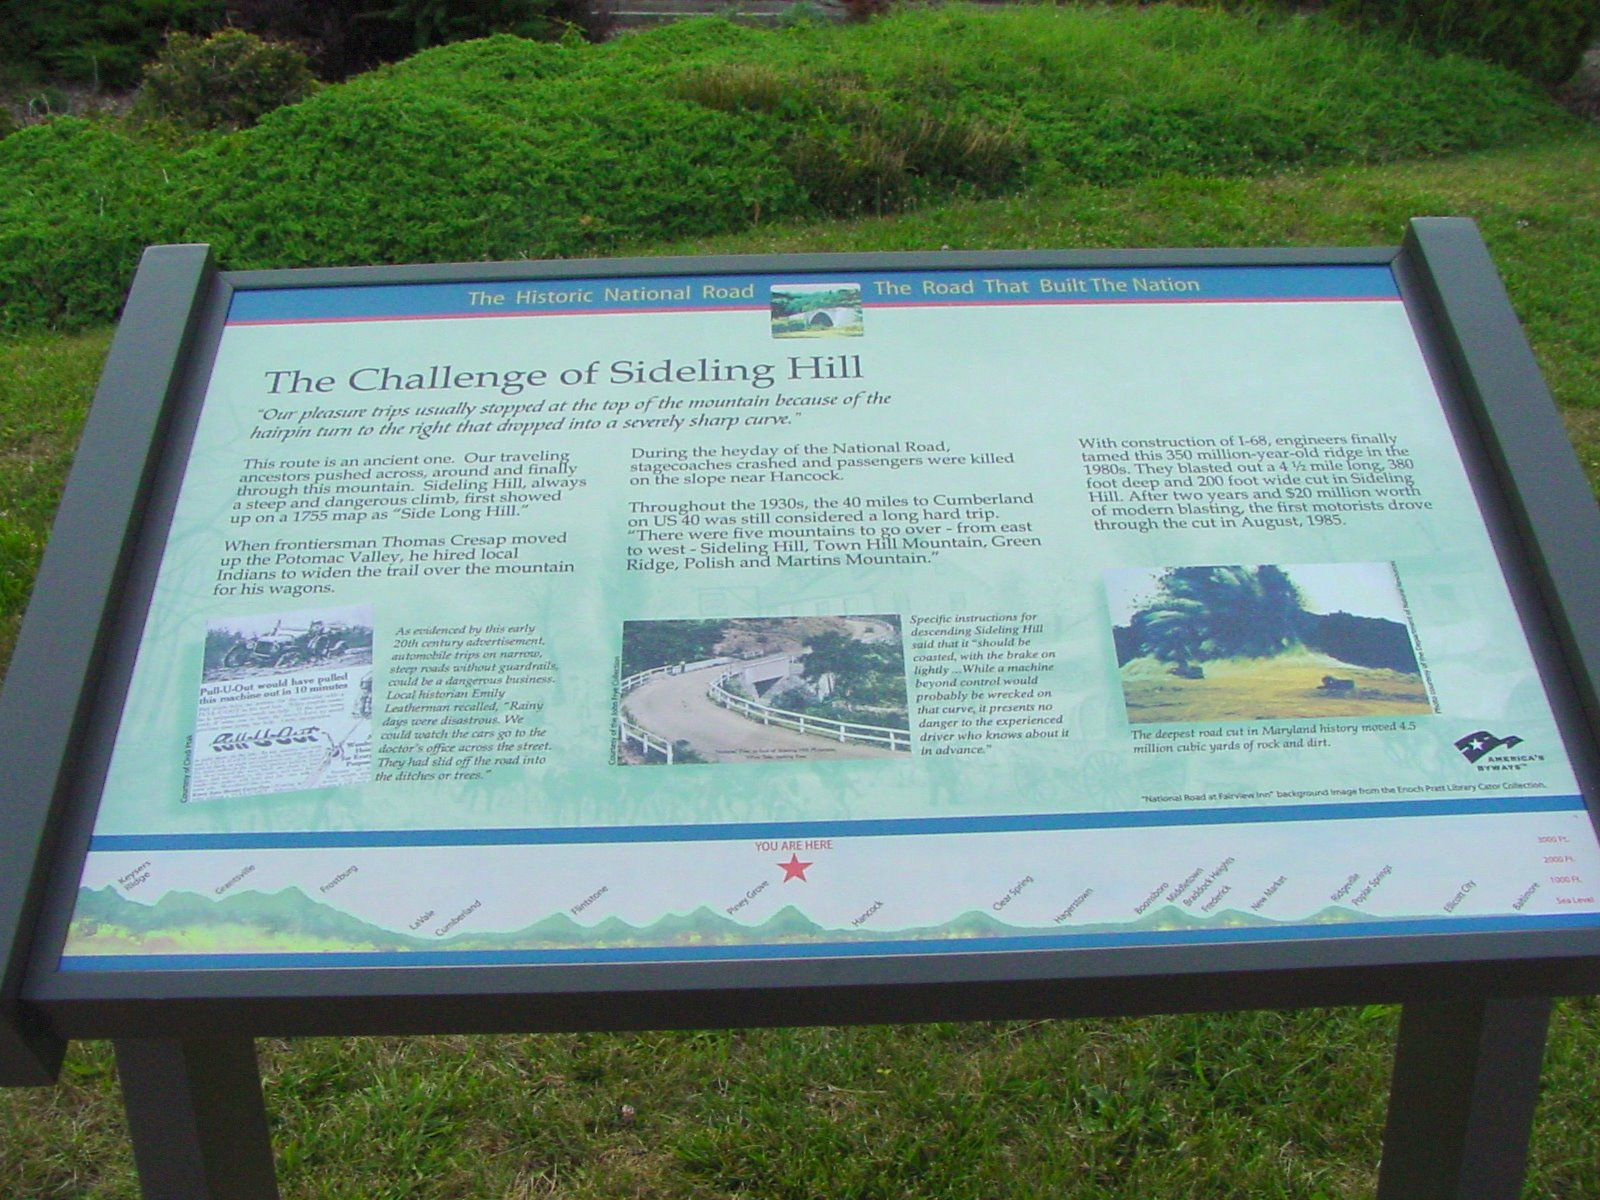 The Challenge of Sideling Hill Marker